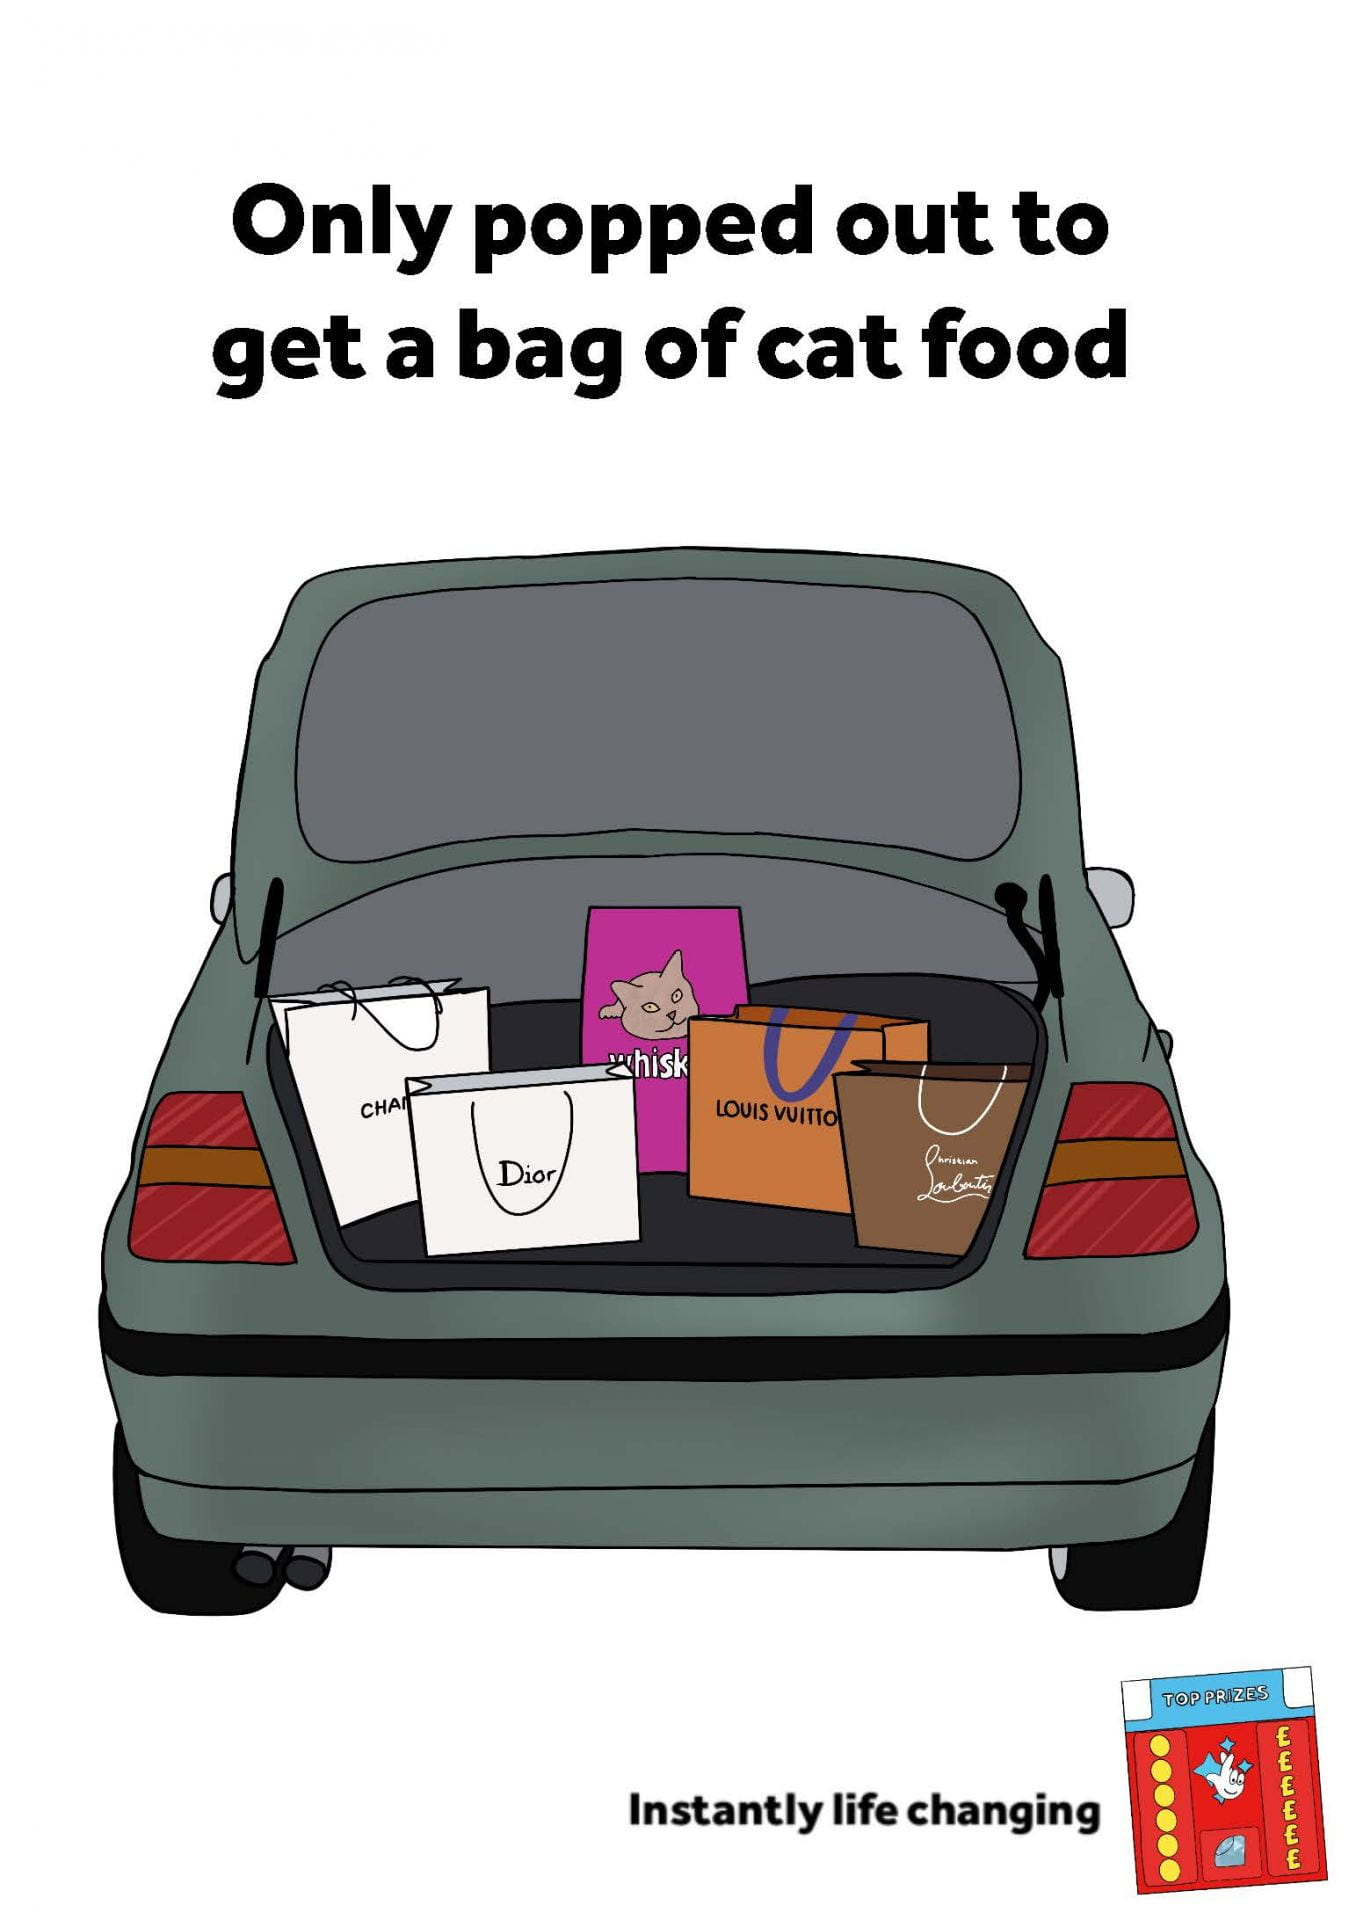 Illustration of car boot full of designer shopping bags and a bag of cat food with the tagline 'Only popped out to get a bag of cat food' (6-sheet).